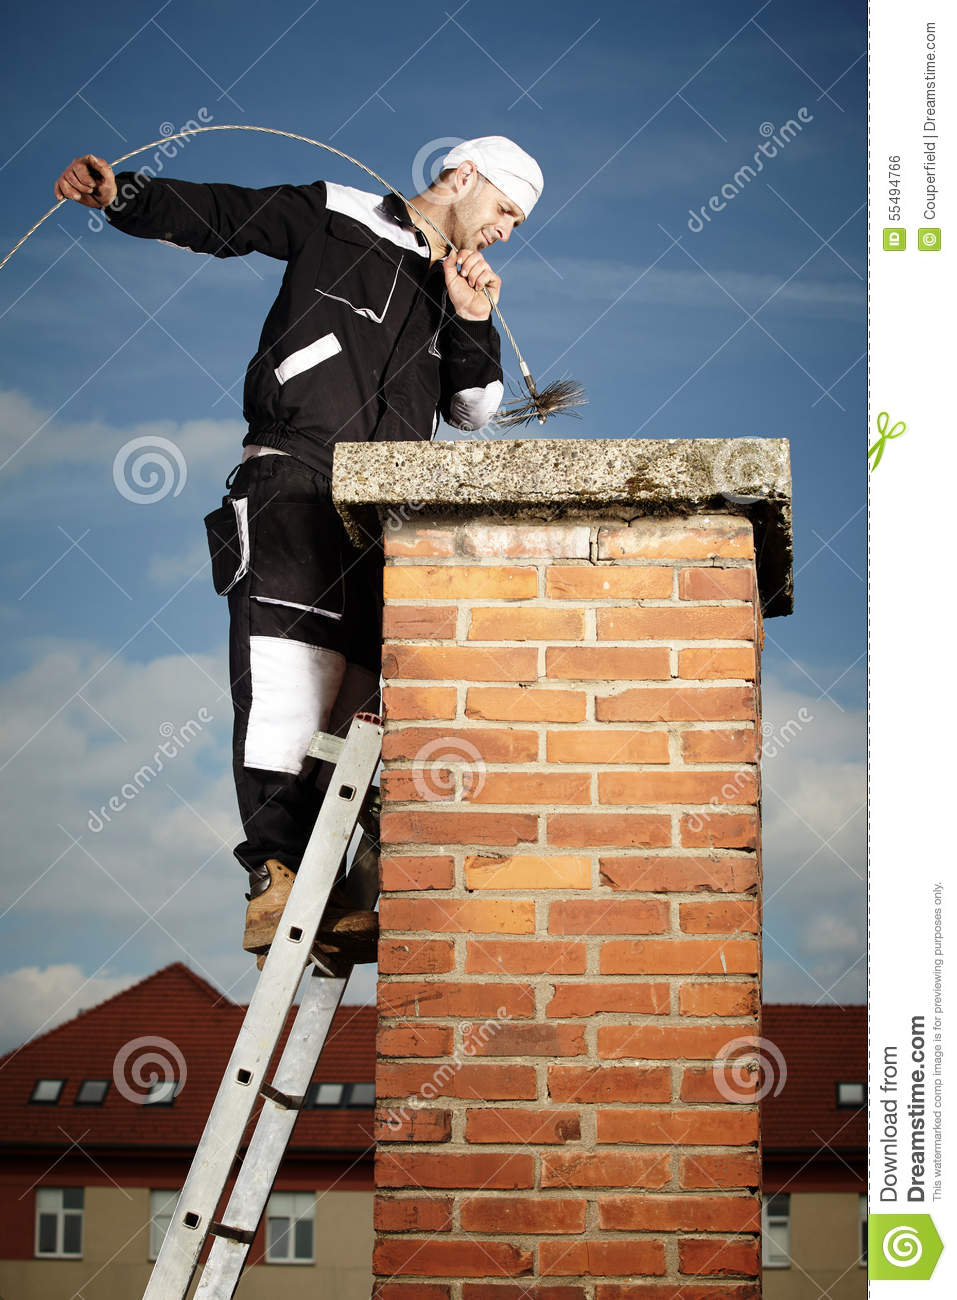 Cleaning Chimney Stock Photo Image Of Standing Black